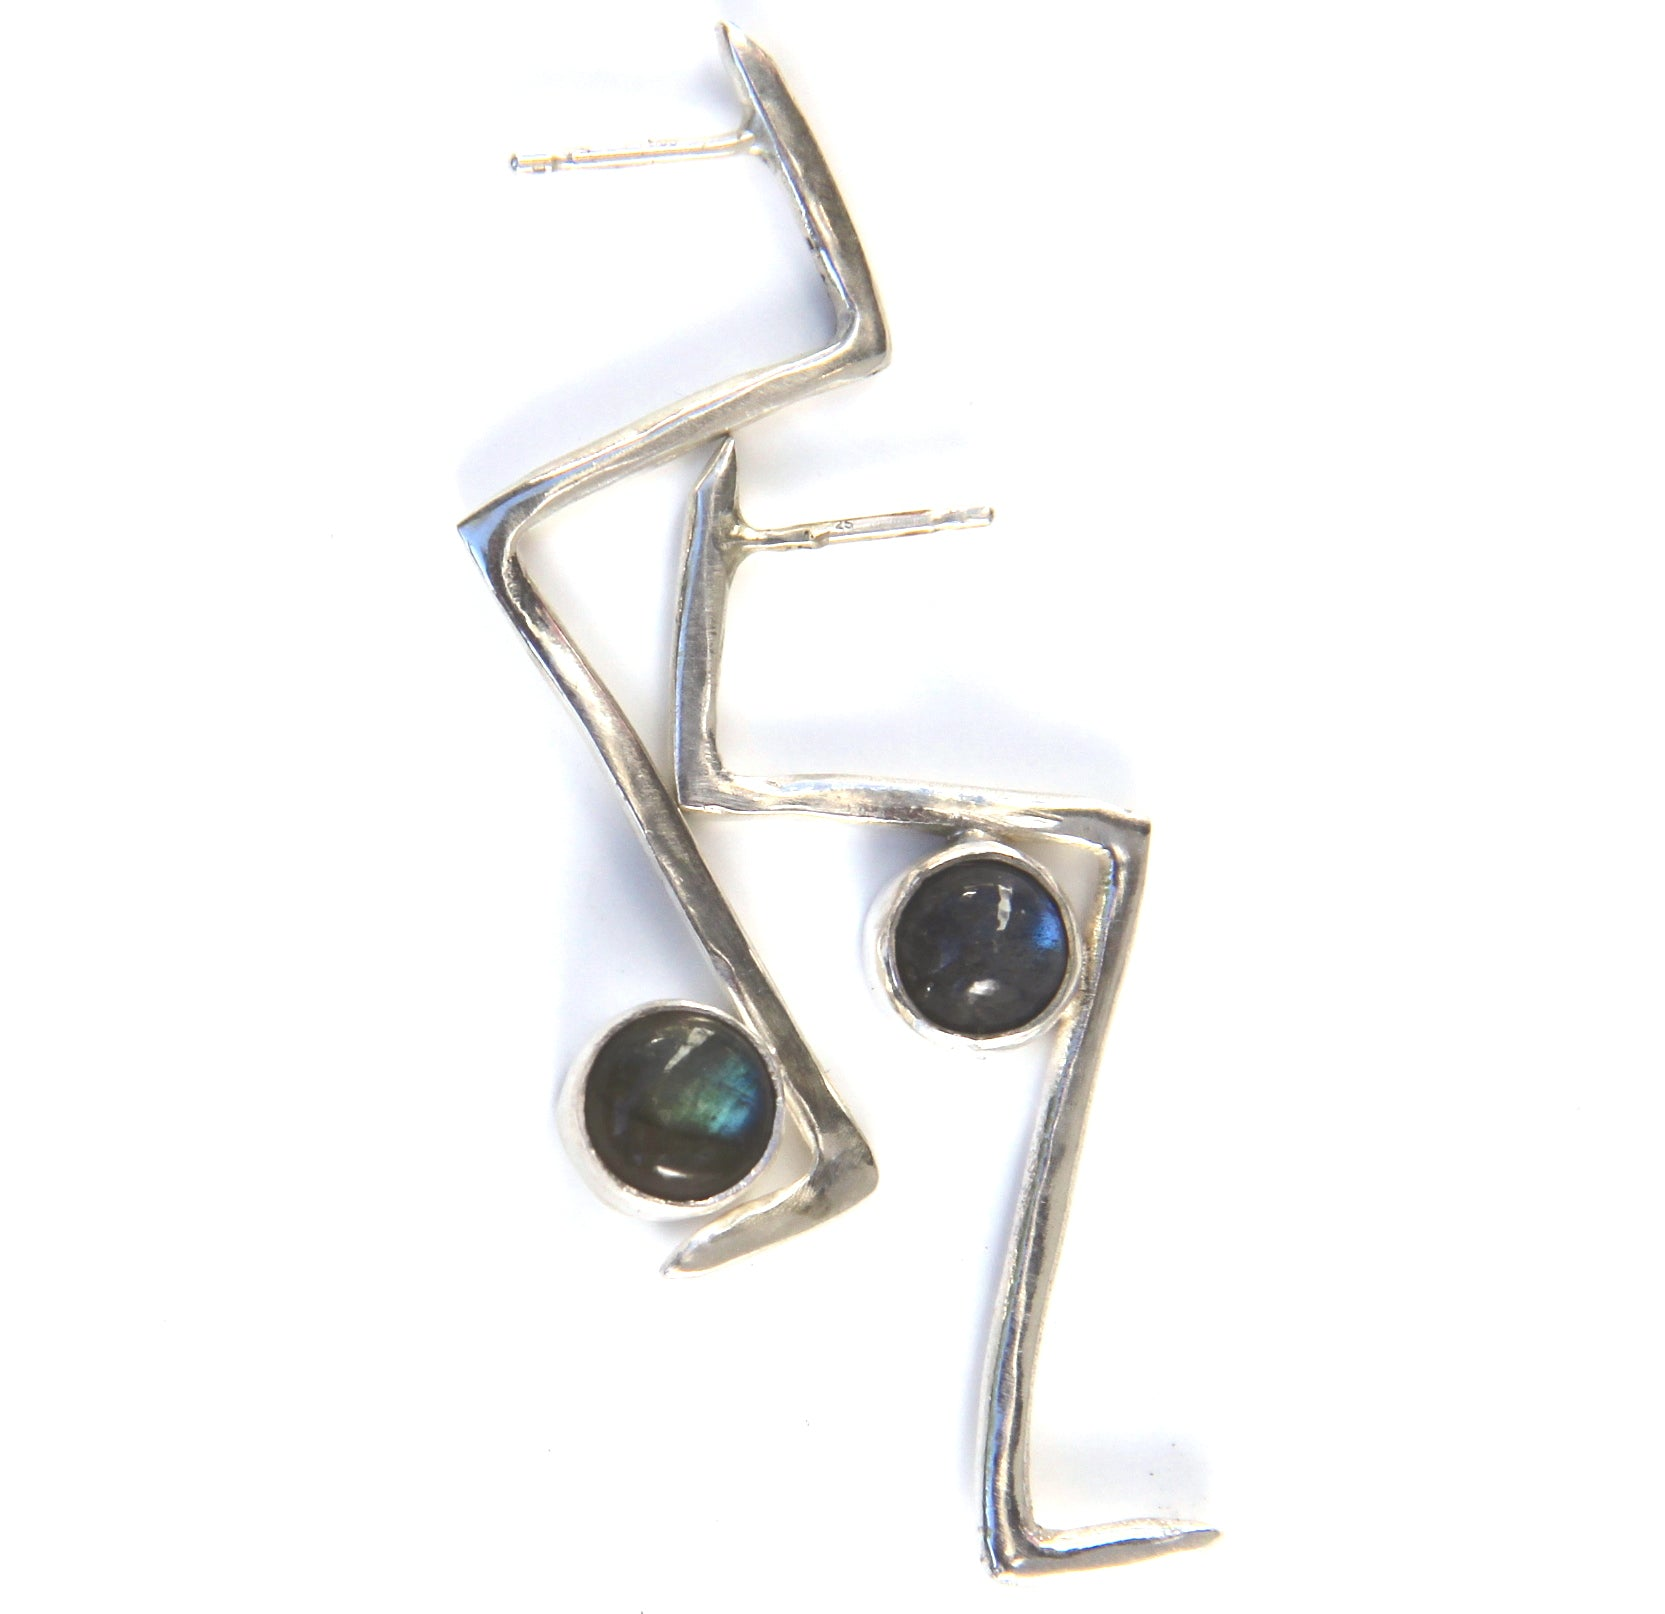 Space Oddity Earrings from the Bowie Collection by Lady J Jewelry